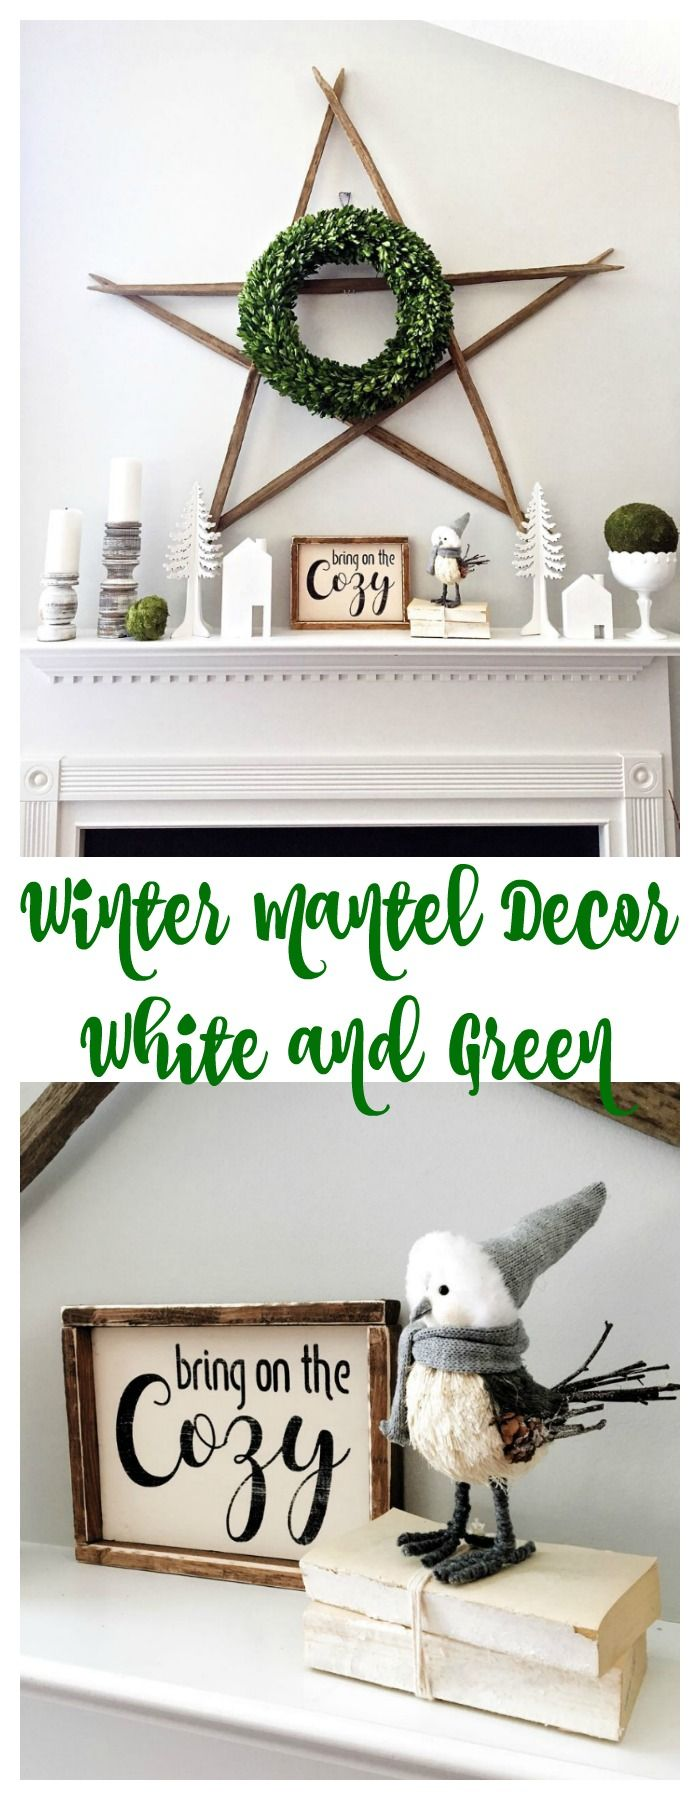 64 best Fireplaces and Mantels images on Pinterest   Cloaks ...